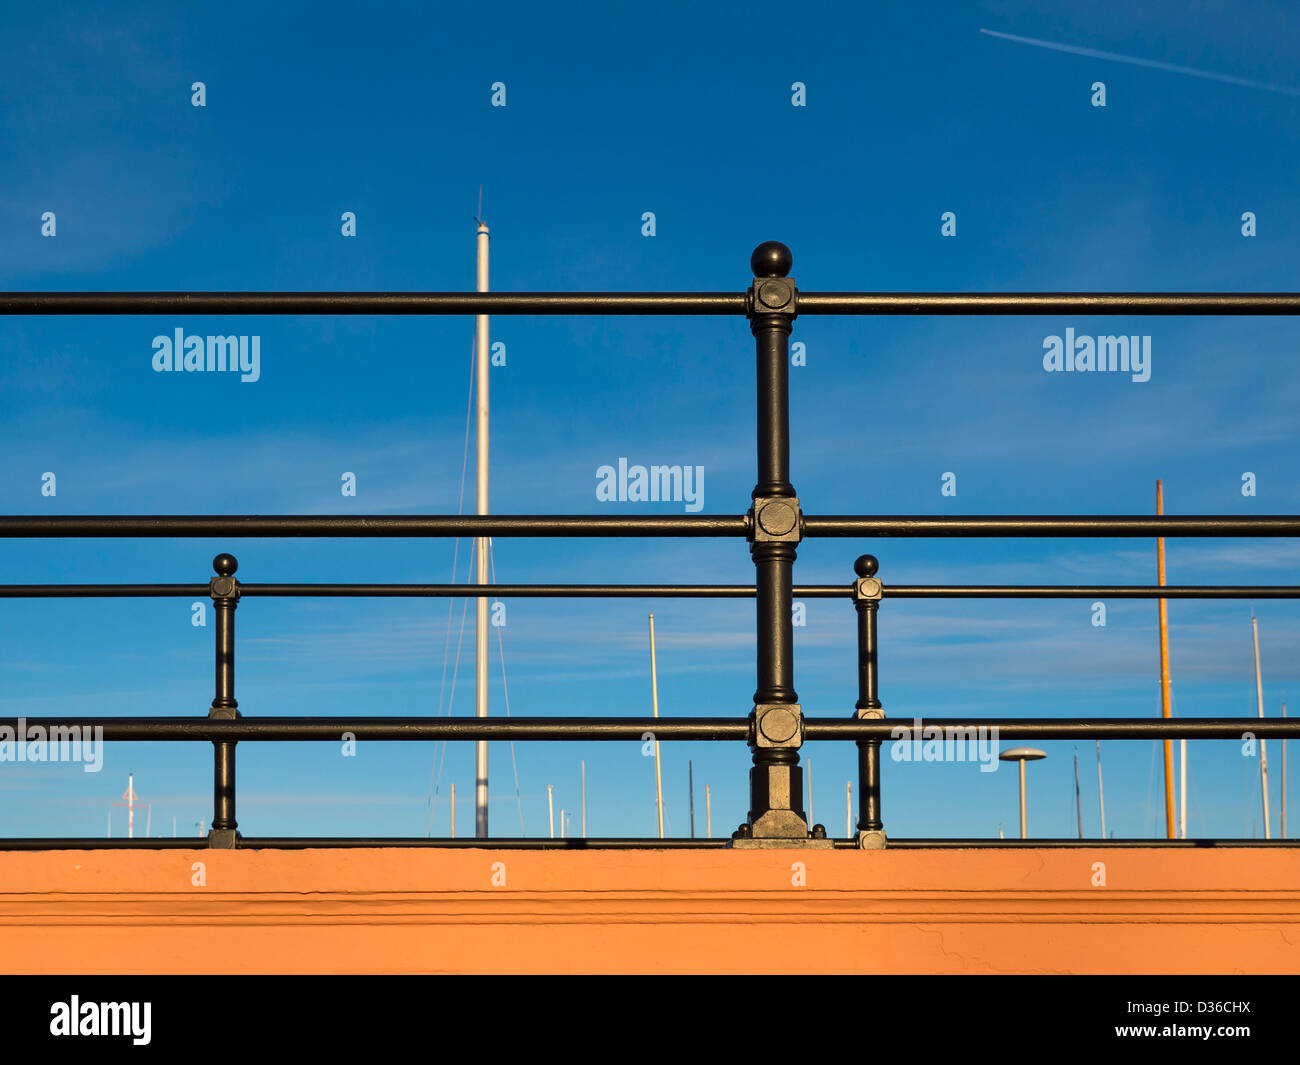 Black railings against a blue sky. - Stock Image